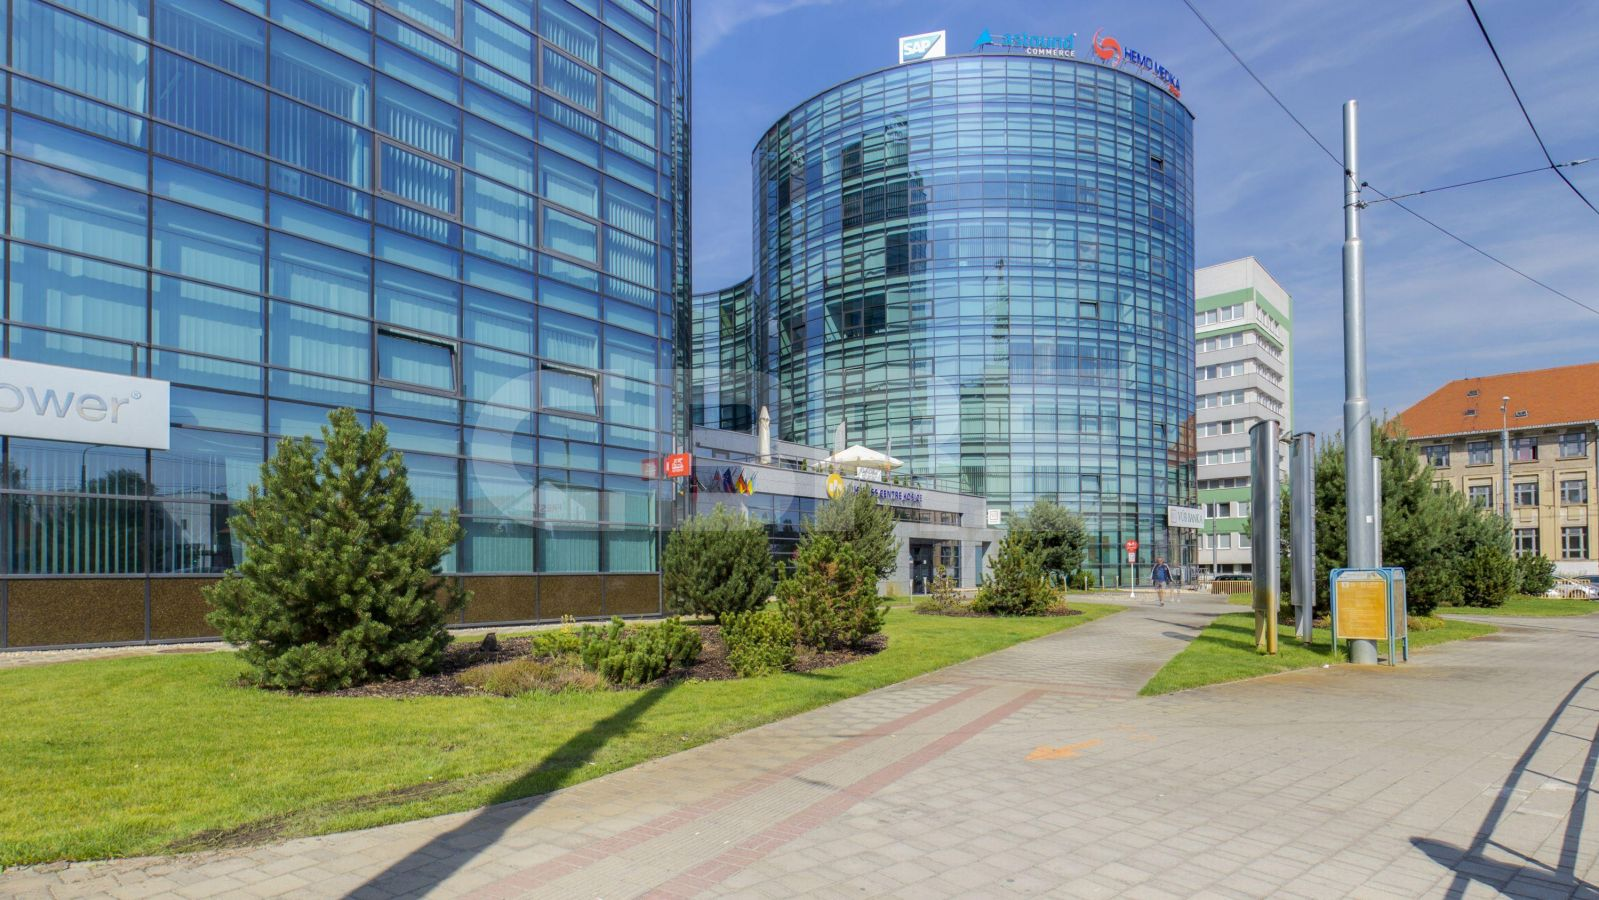 Business Center Košice II, Košice - Staré Mesto | Offices for rent by CBRE | 5